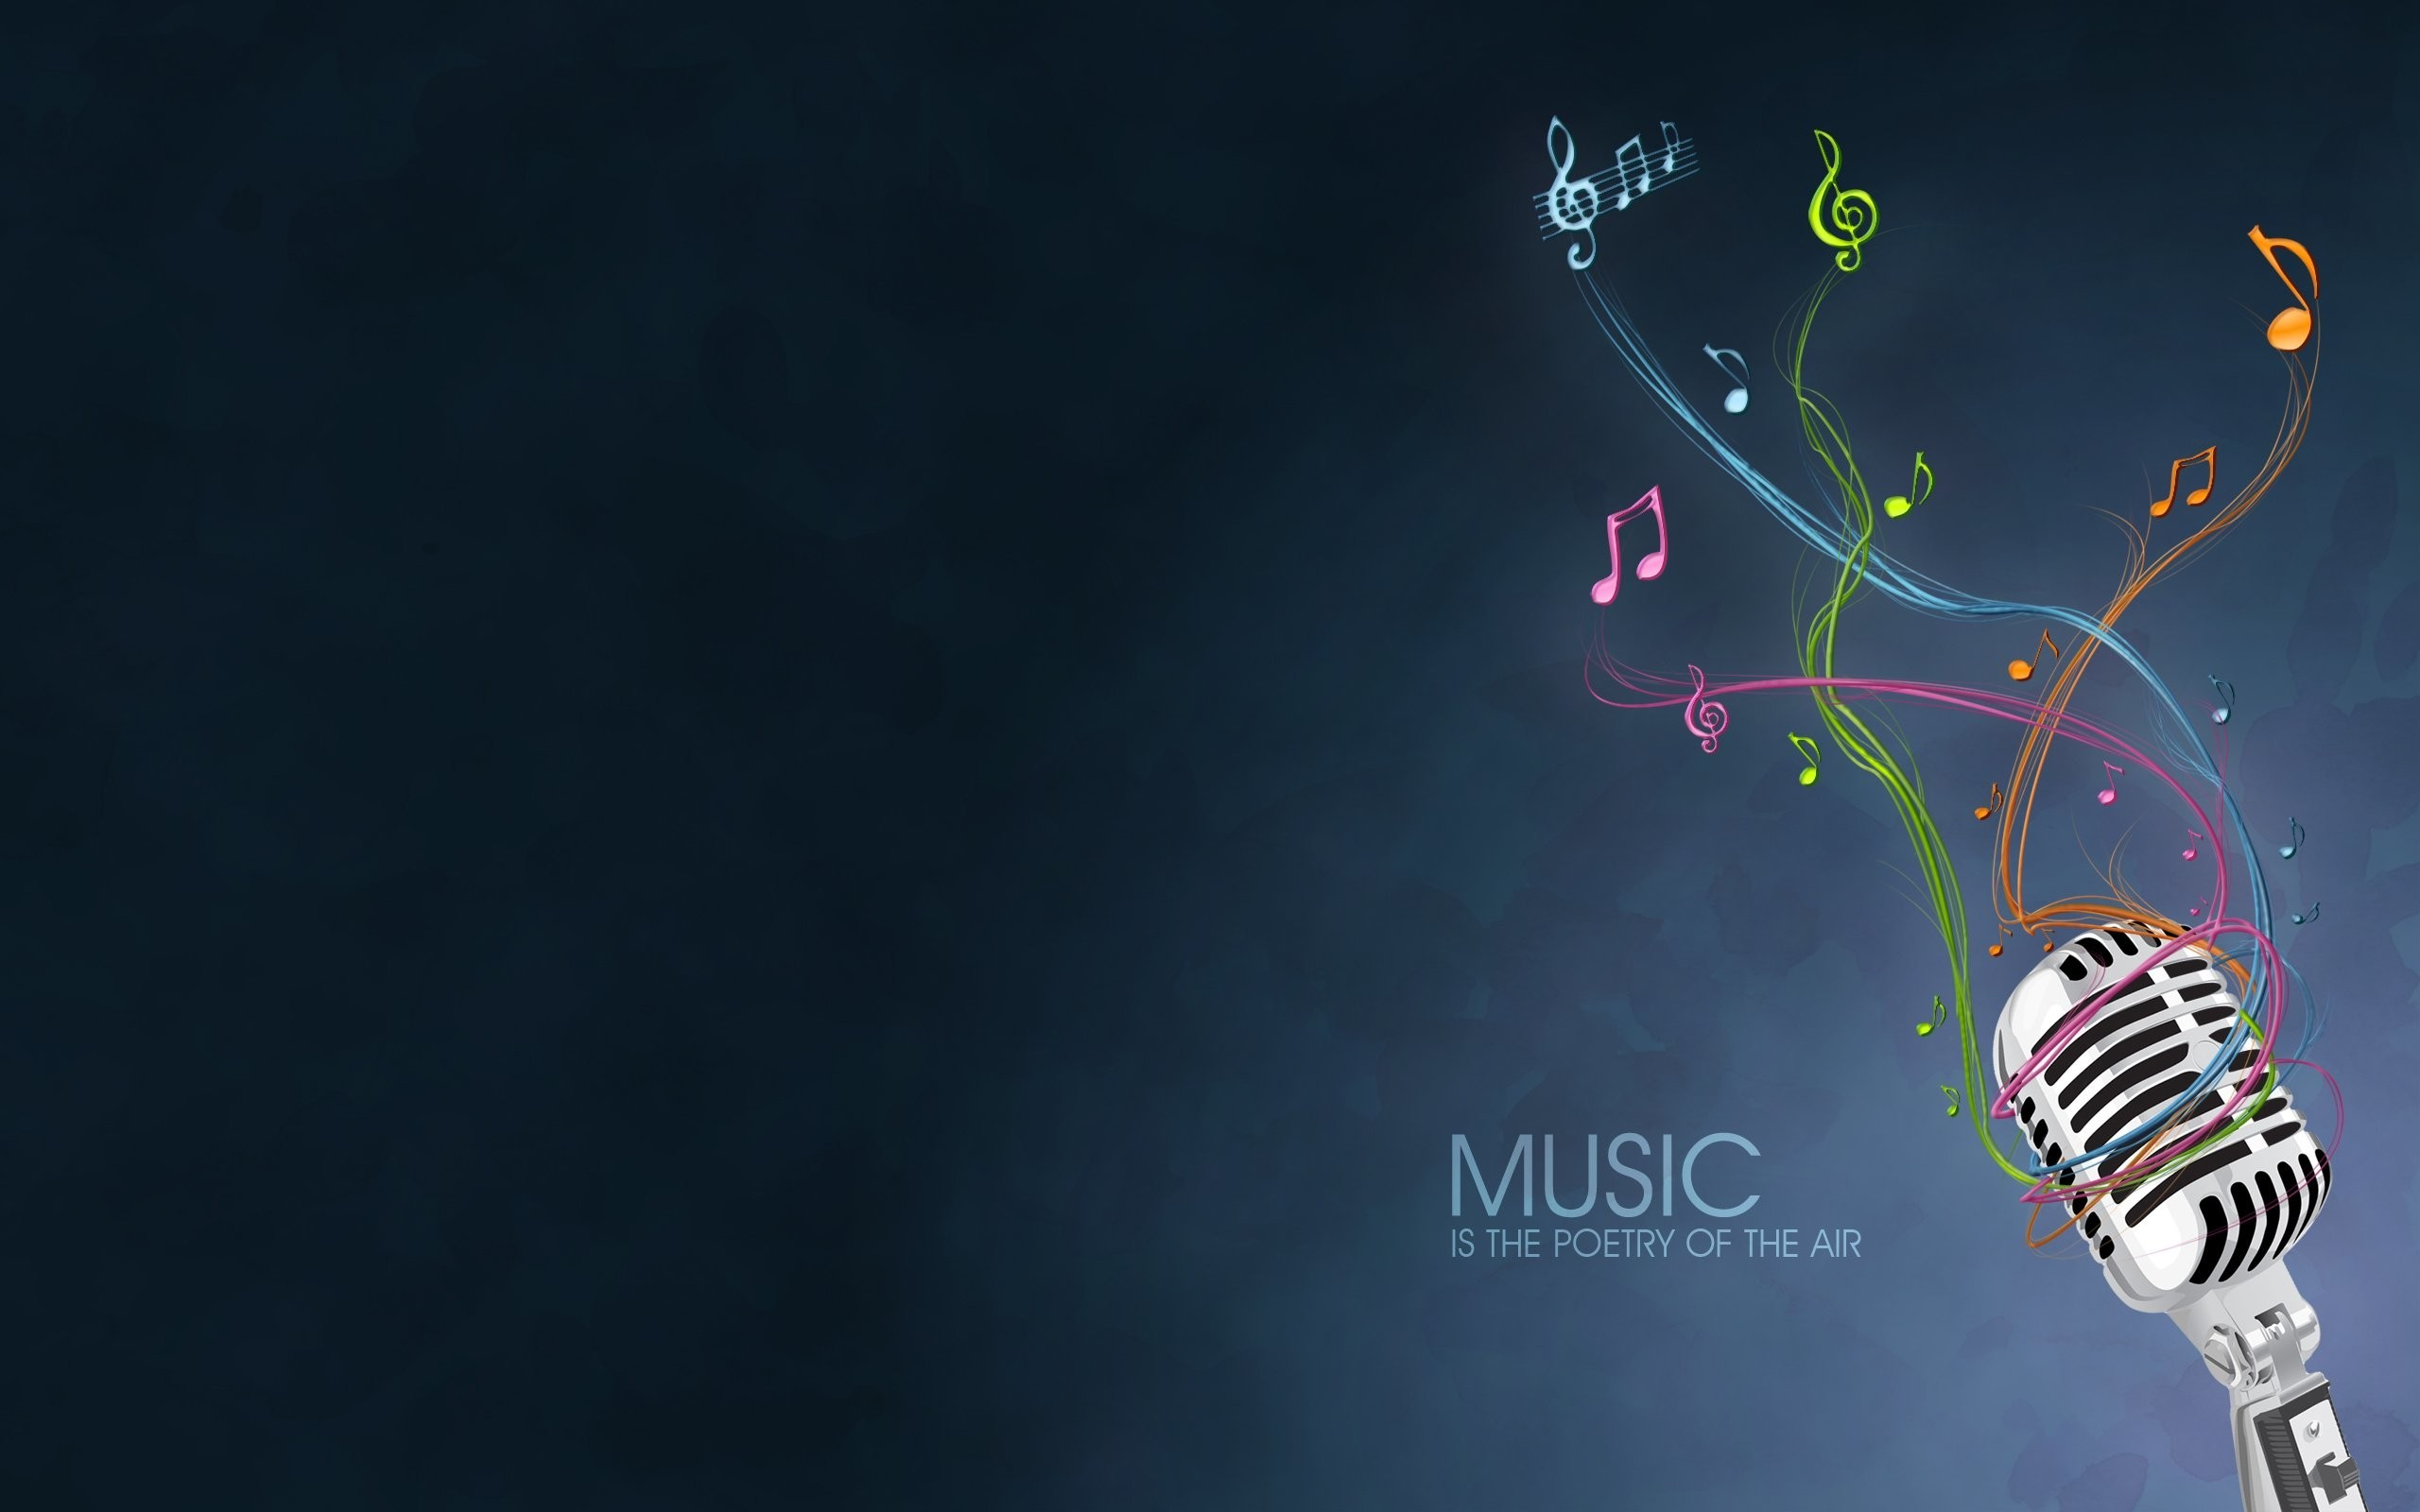 Music Hd Pic Music Wallpapers Hd 74 Background Pictures